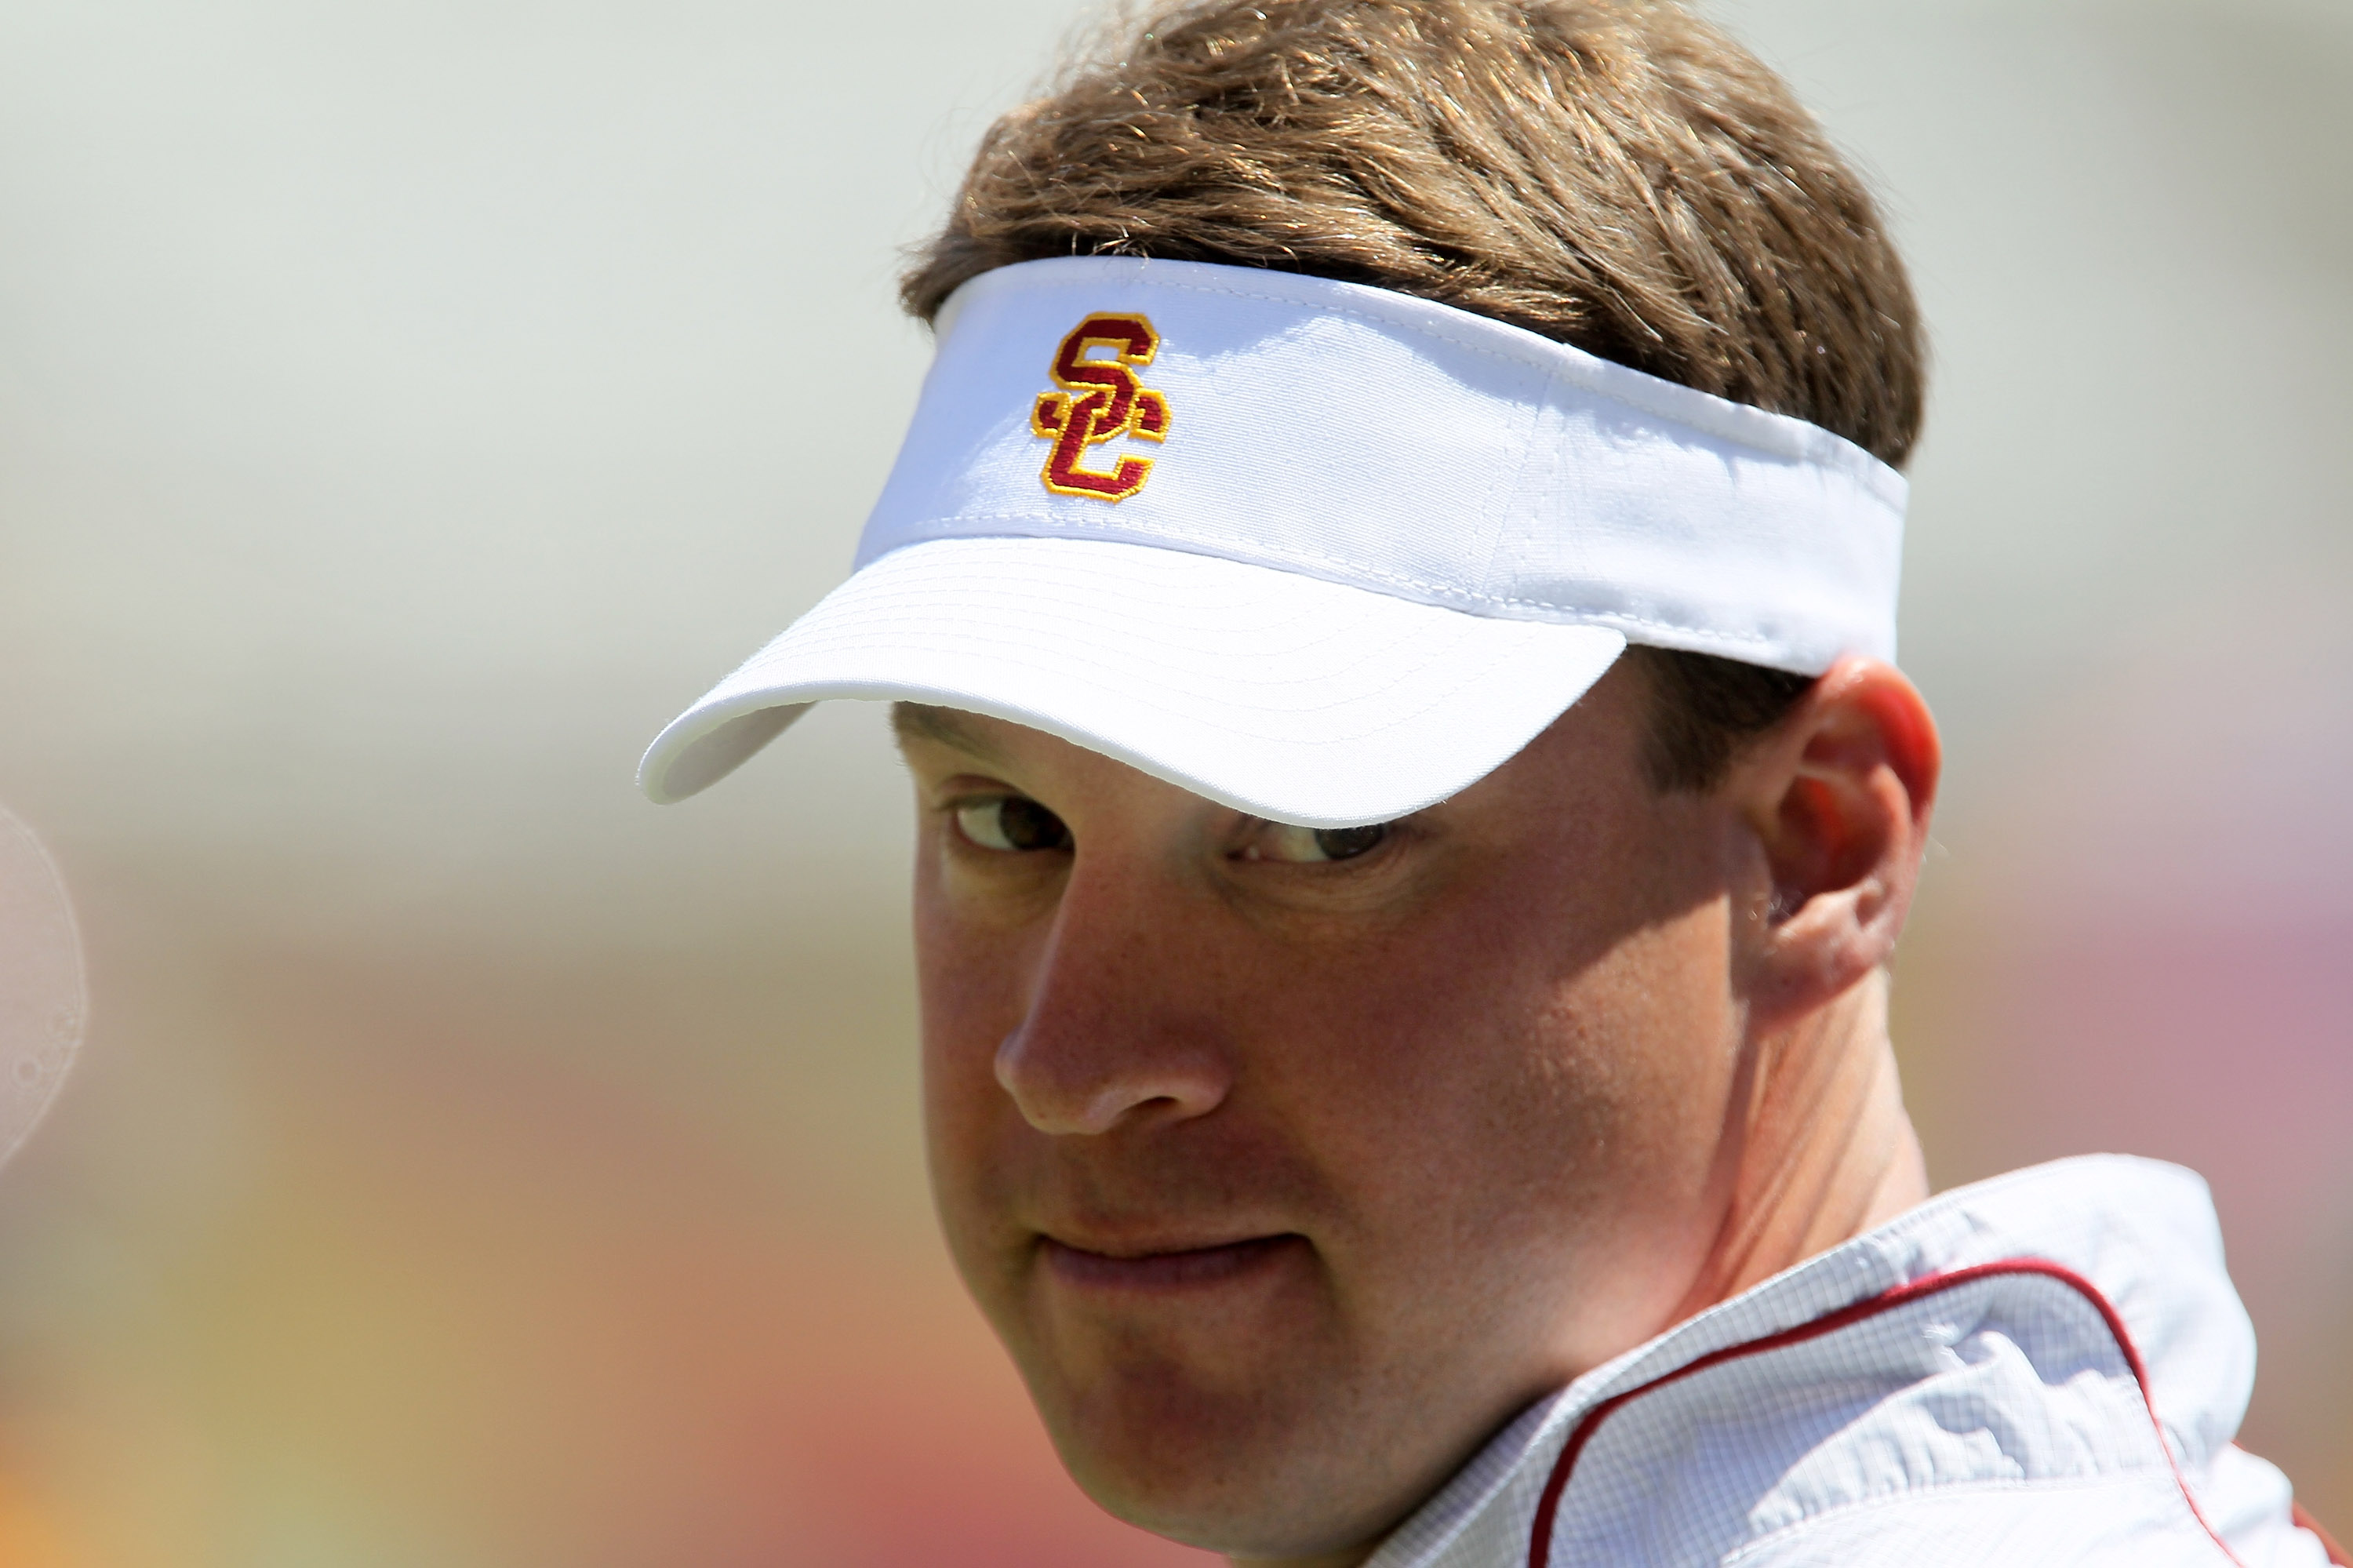 LOS ANGELES, CA - MAY 01:  Head coach Lane Kiffin looks on during the  USC Trojans spring game on  May 1, 2010 at the Los Angeles Memorial Coliseum in Los Angeles, California.  (Photo by Stephen Dunn/Getty Images)